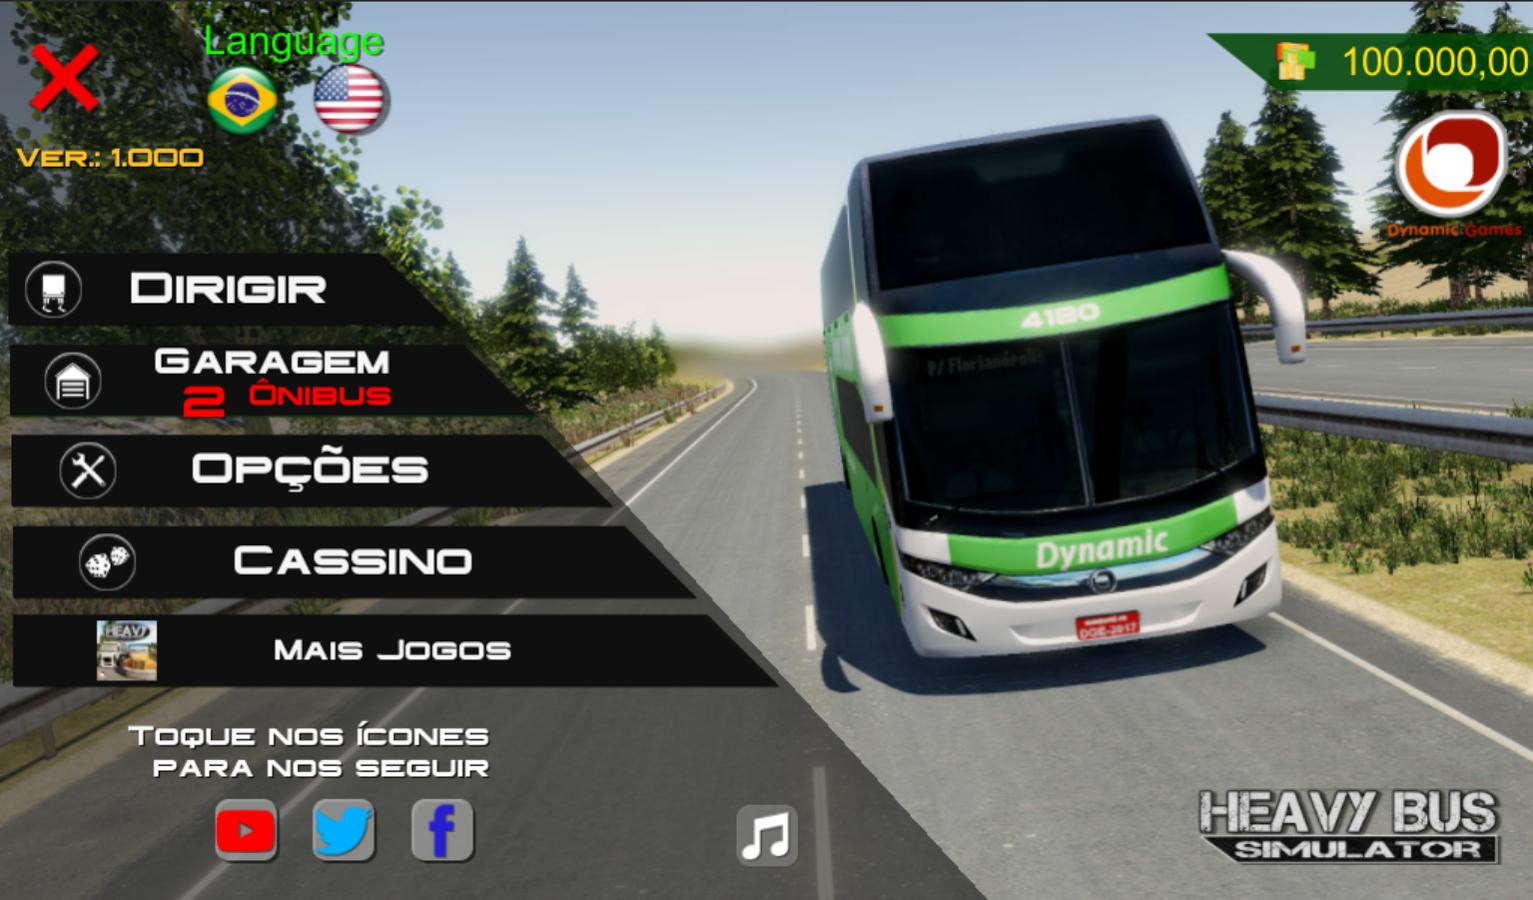 Heavy Bus Simulator for Android - APK Download